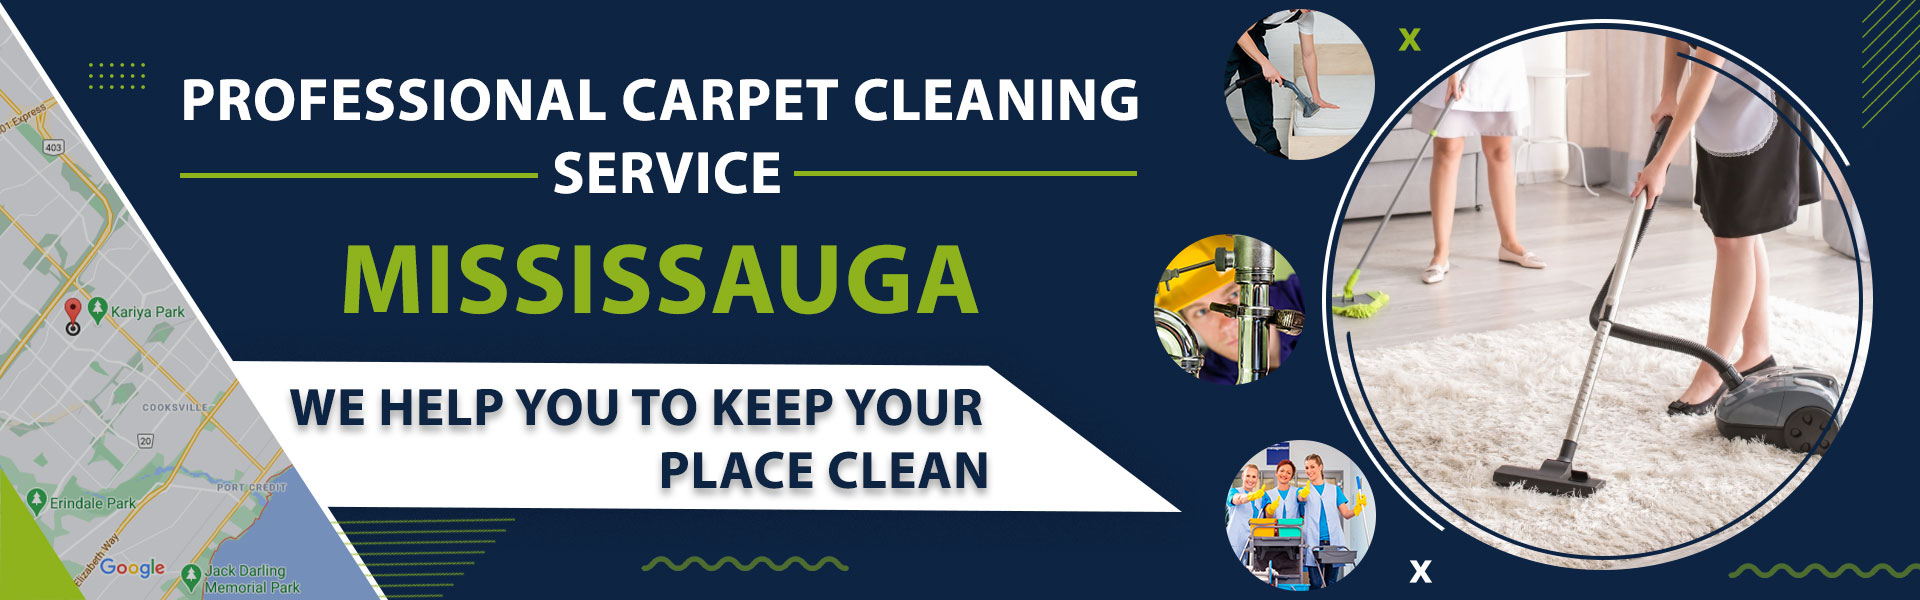 Professional Carpet Cleaning Services Mississauga